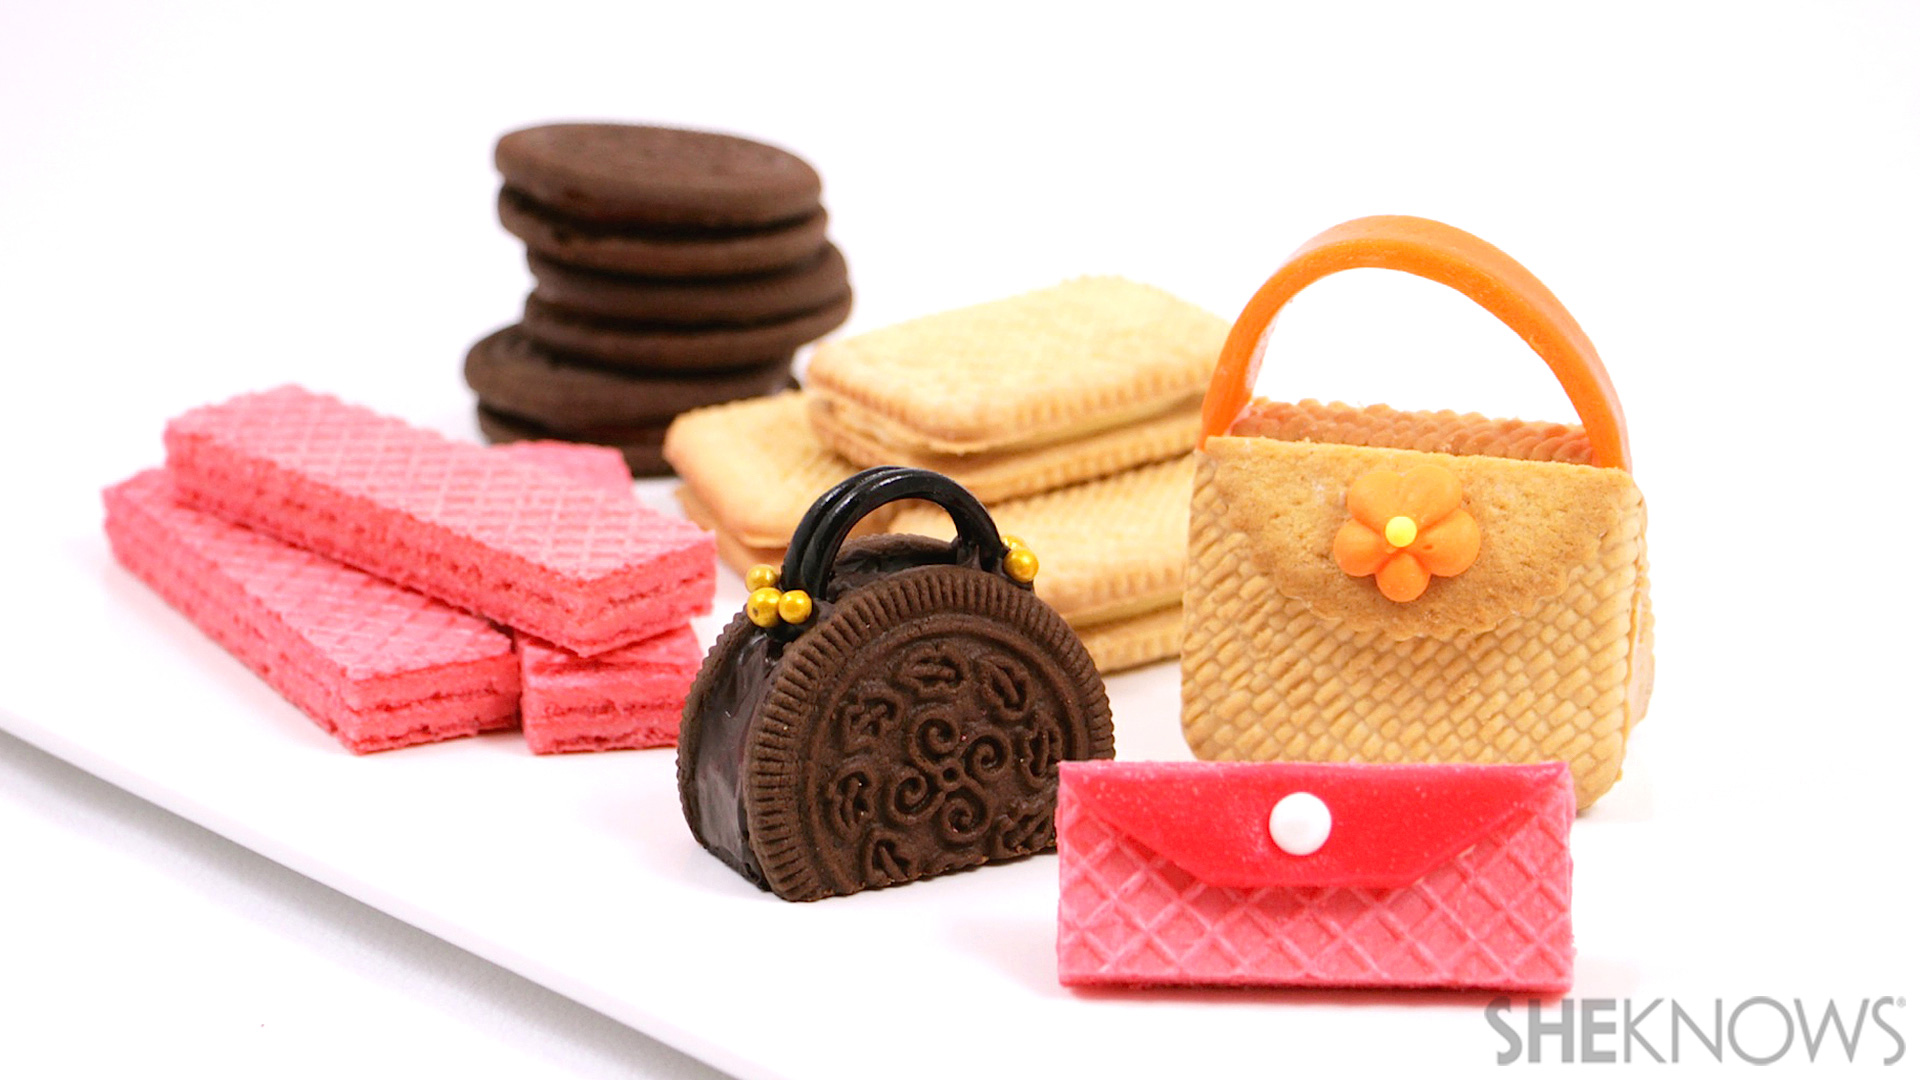 These cookie purses are entirely edible (and adorable!)